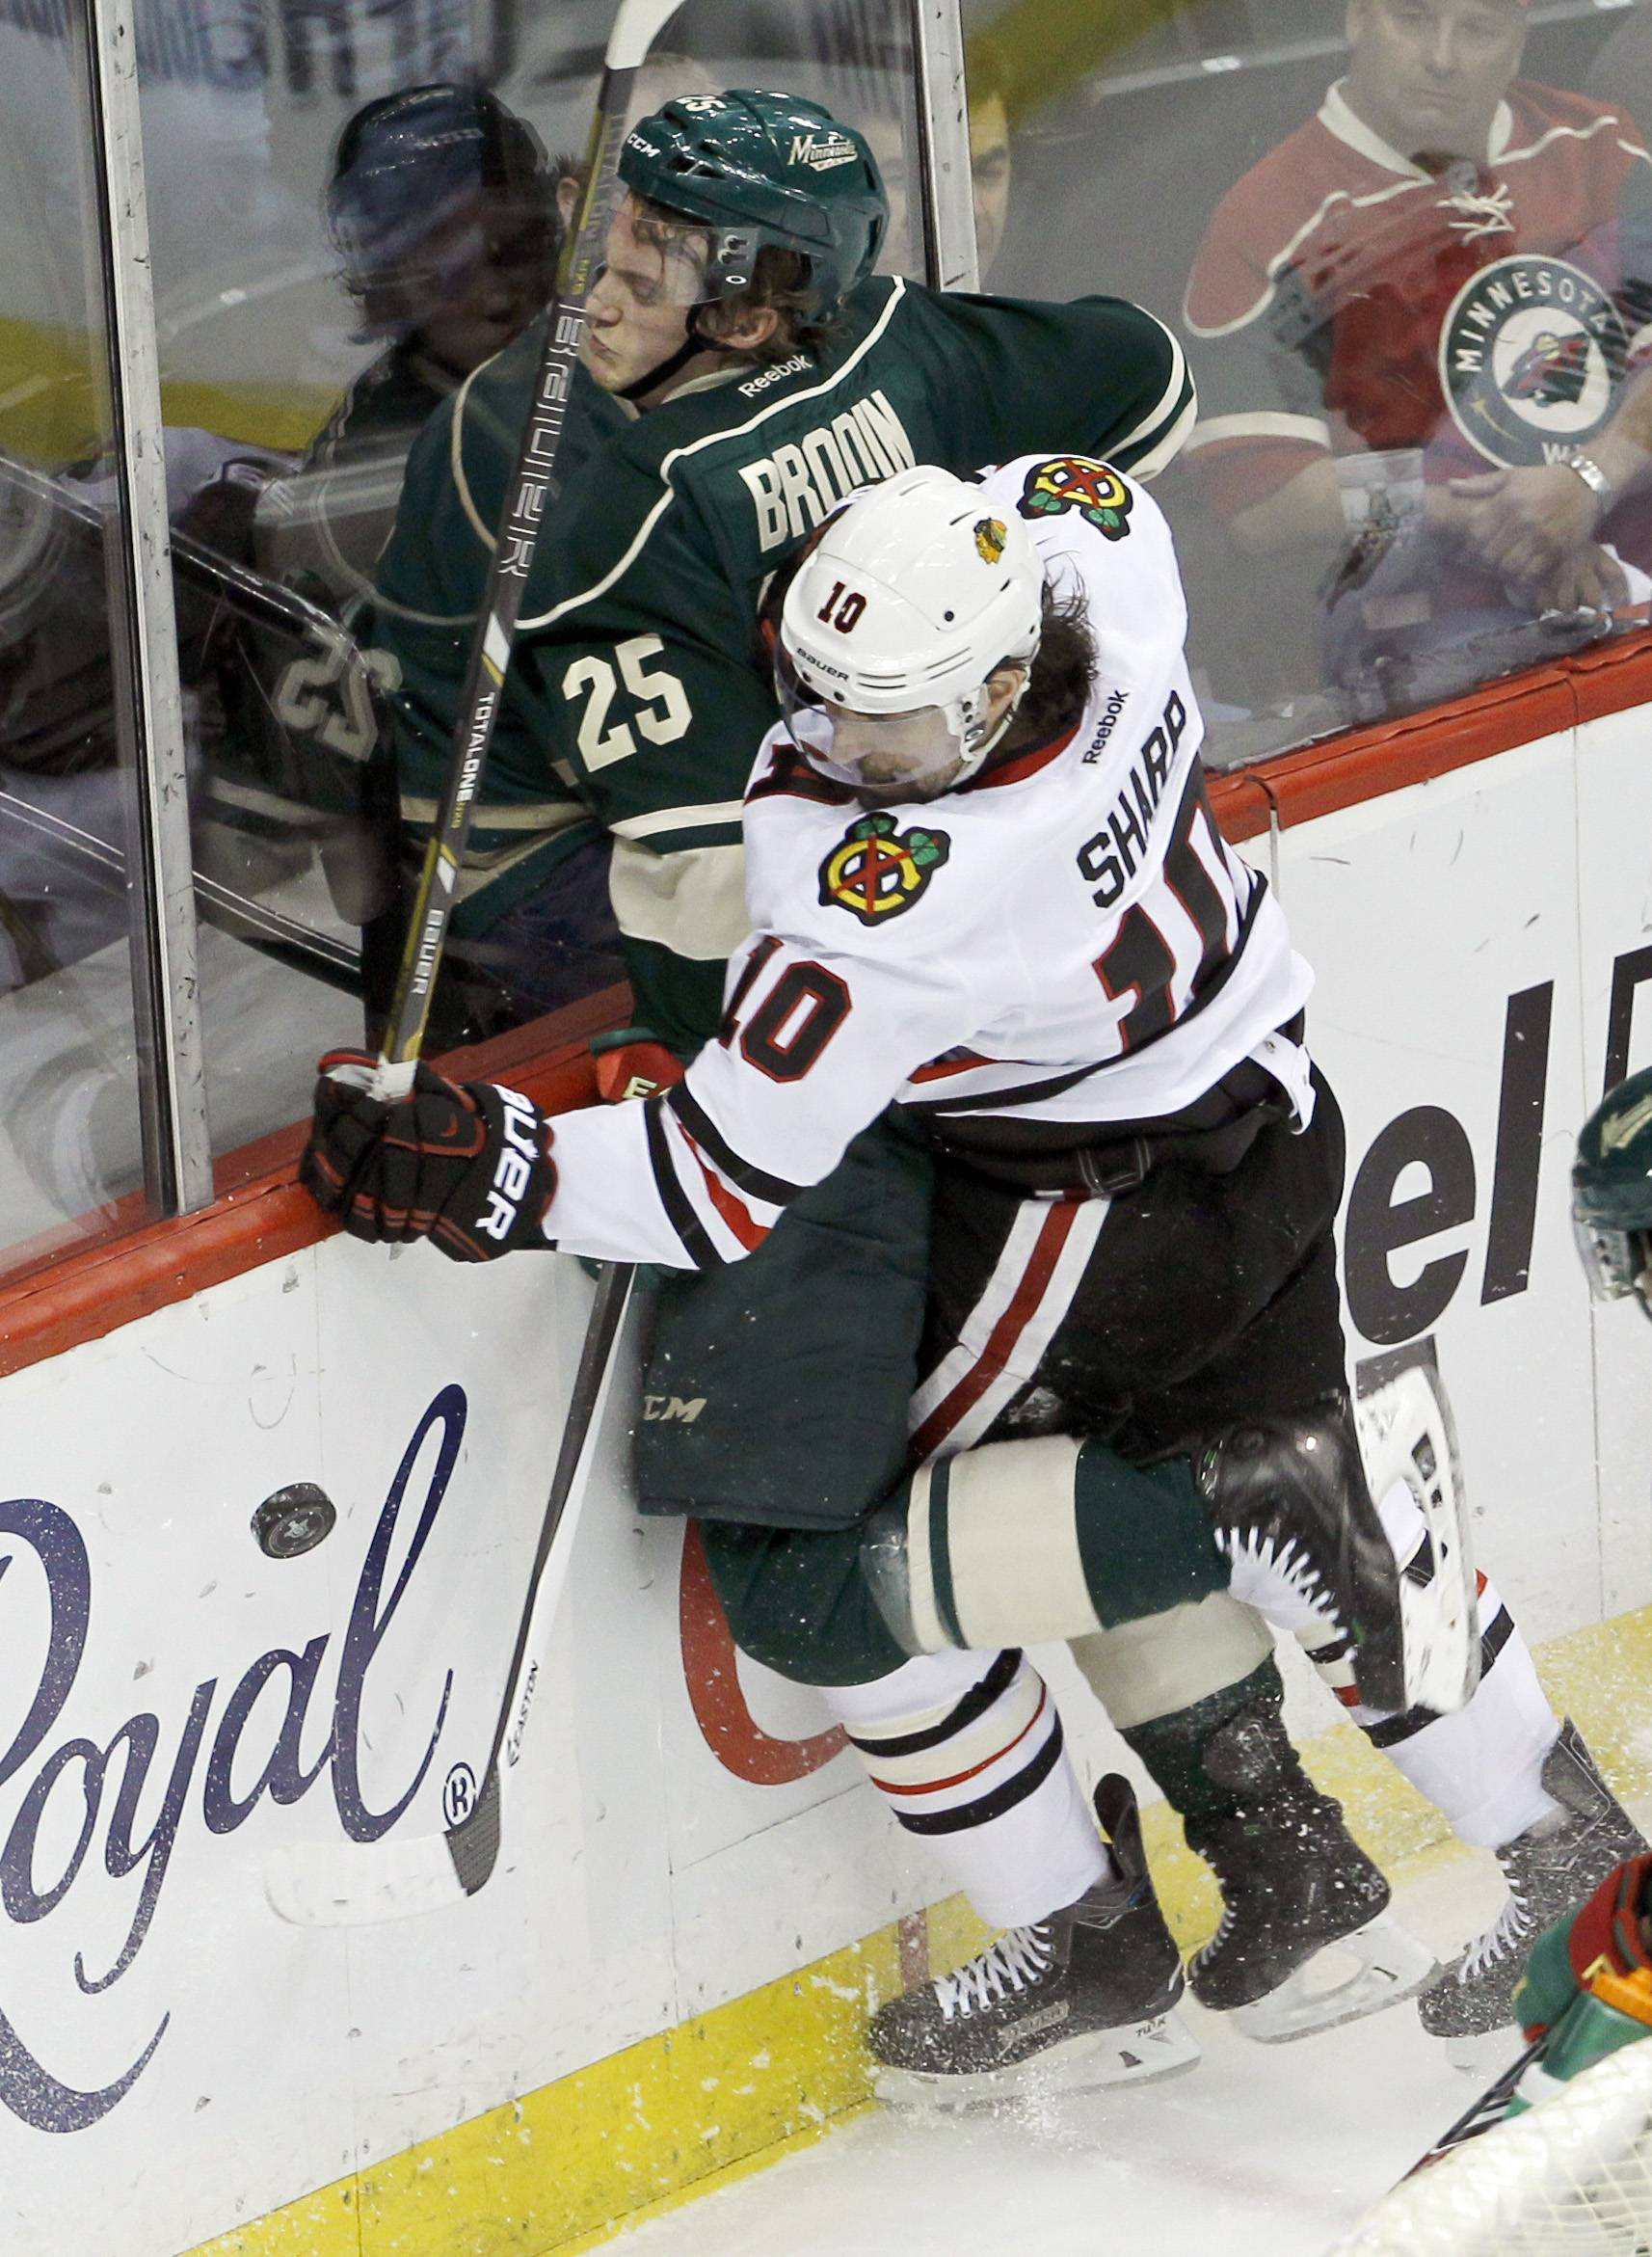 Patrick Sharp checks Wild defenseman Jonas Brodin into the boards as they battle for the puck during the first period of the Hawks' Game 4 loss Friday in Minnesota.